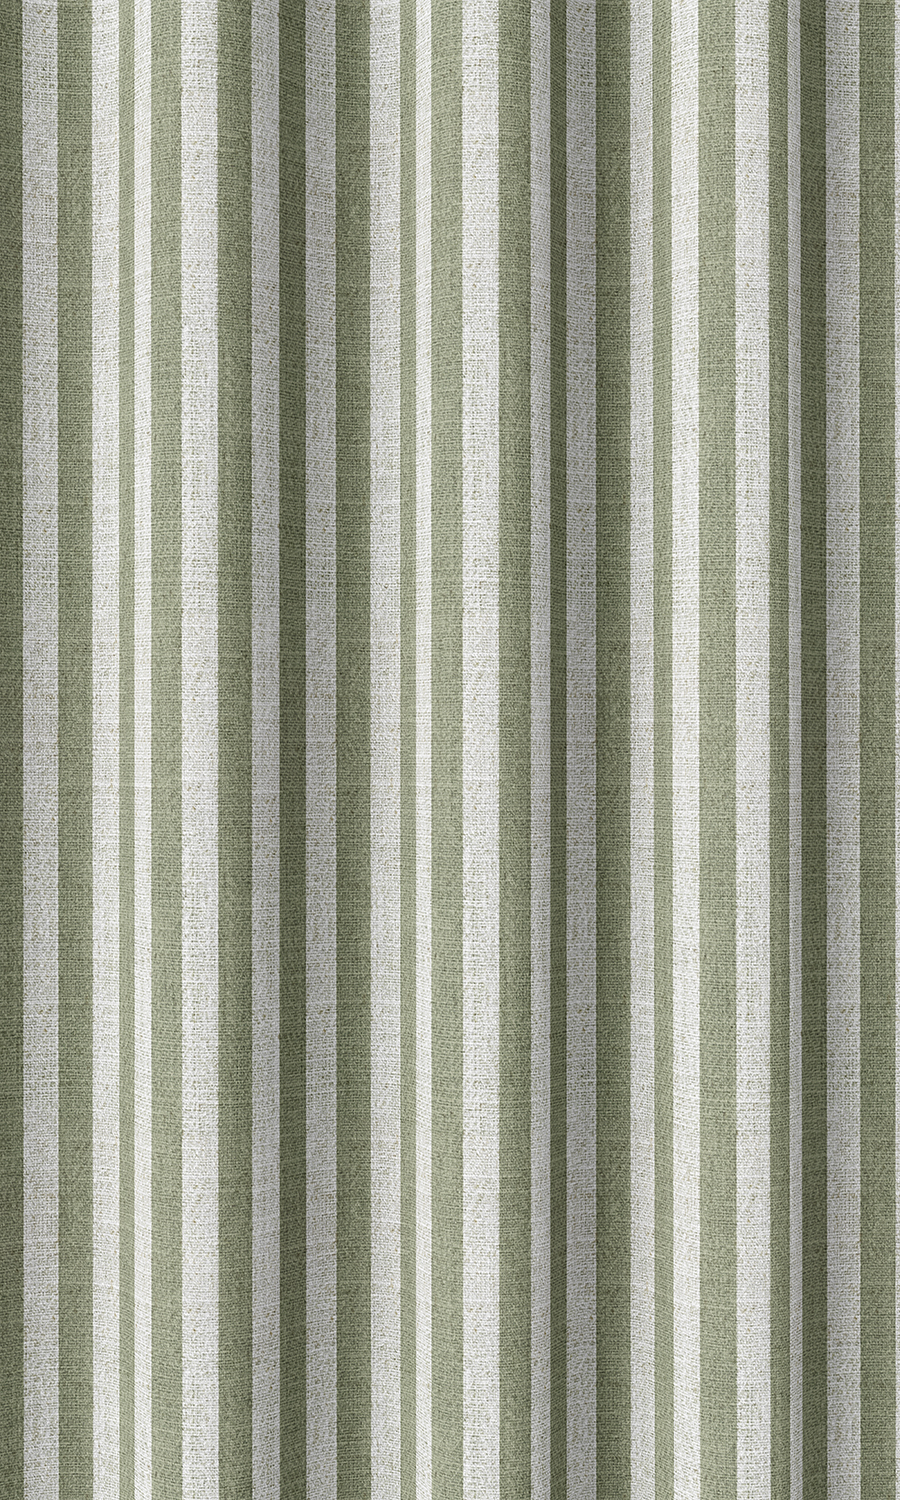 Green Striped Affordable Custom Drapery